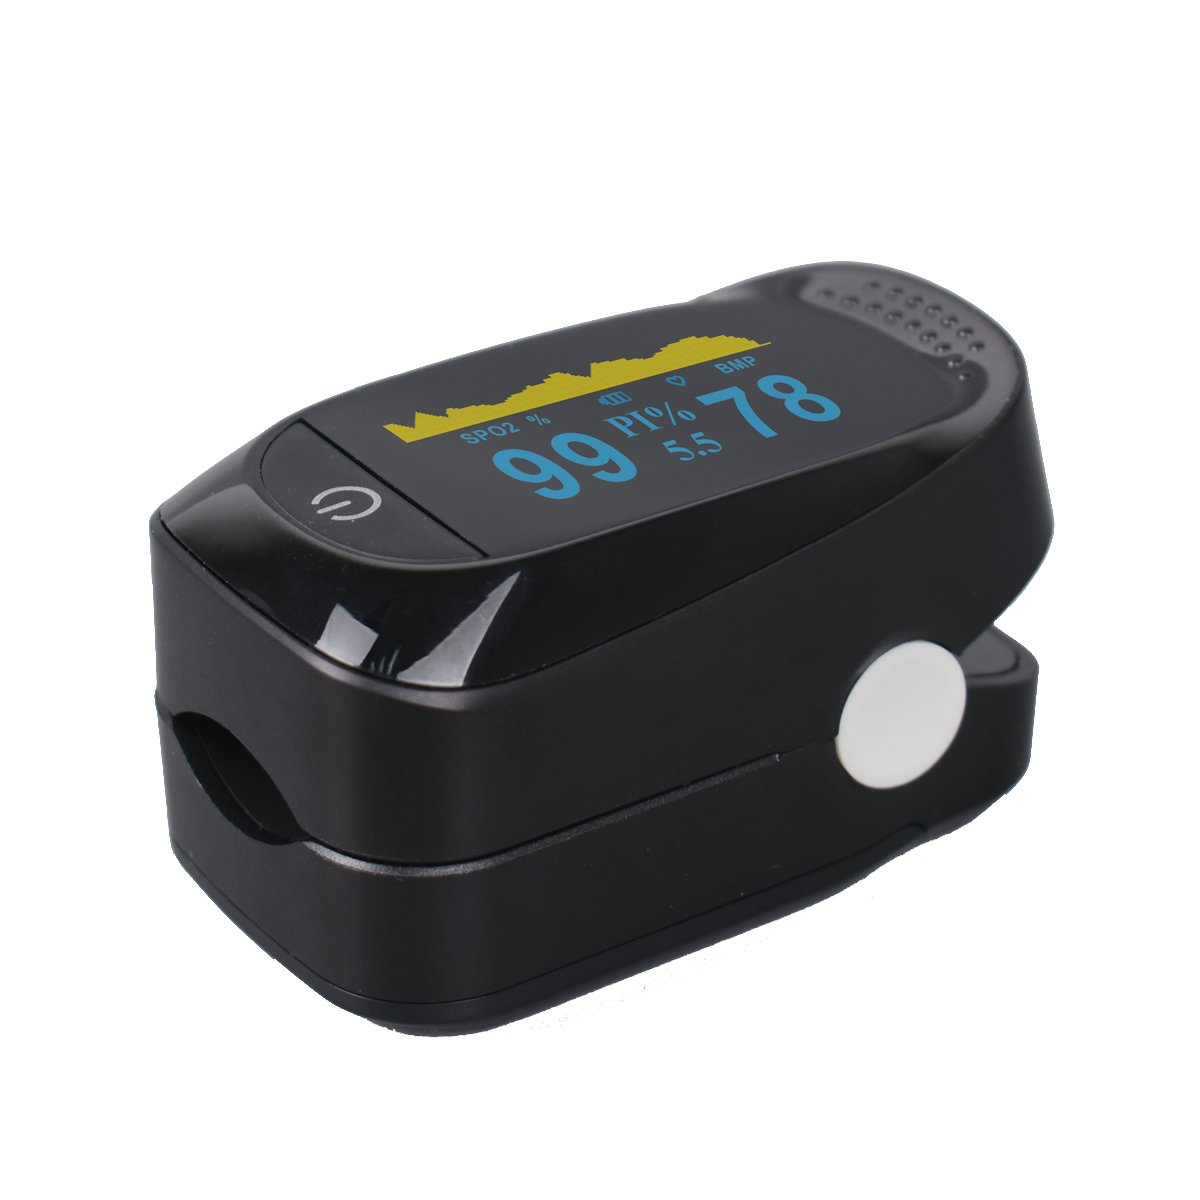 Fingertip Pulse Oximeter with Plethysmograph and Perfusion Index Measures SPO2 Finger Blood Oxygen Saturation Monitor, Perfusion Index, Pulse Rate,Mini Portable Size for Children,Adults by Glorified Mary (Image #6)